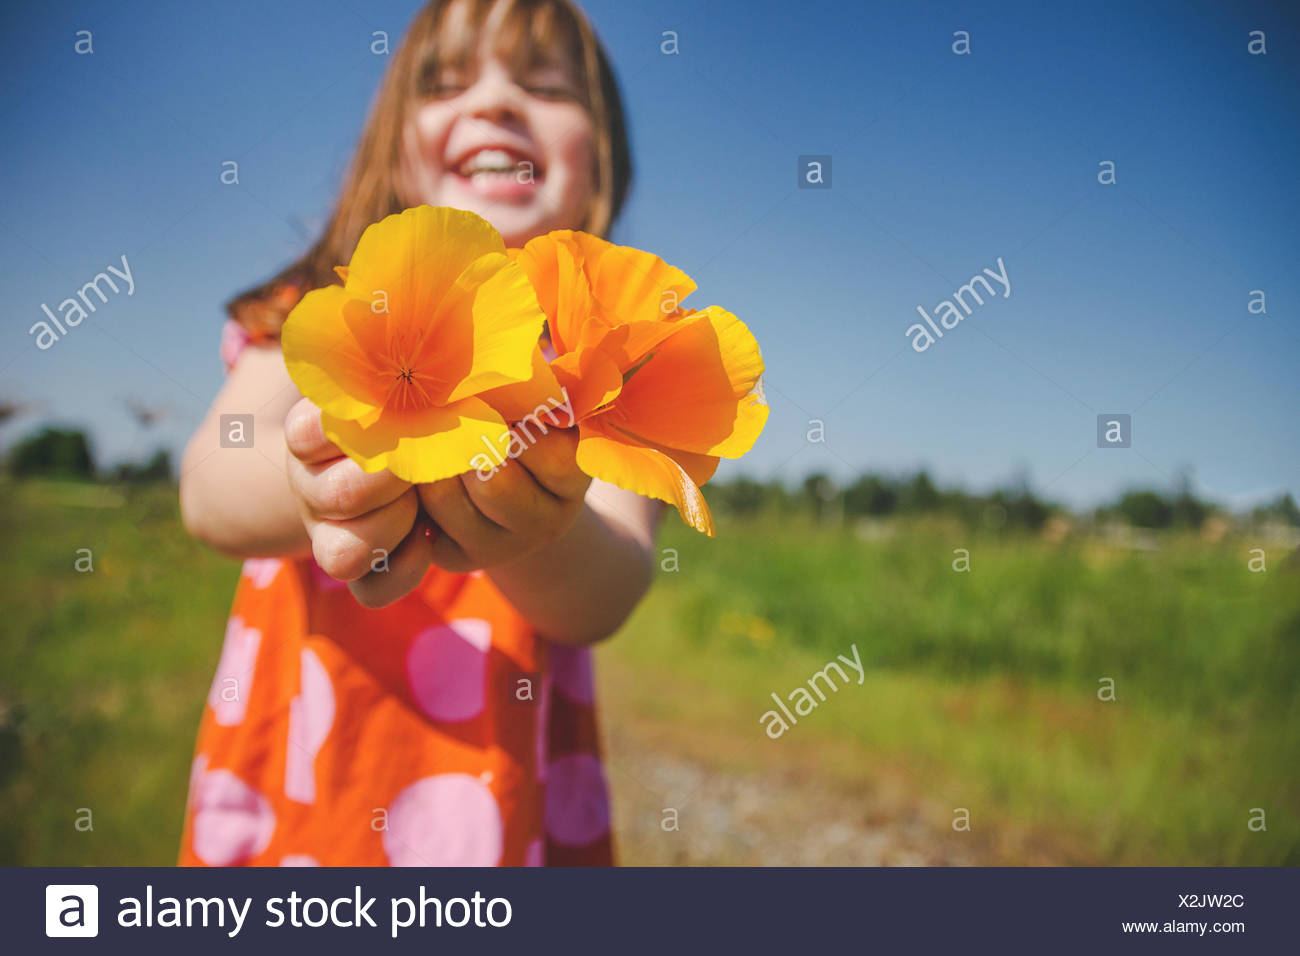 Girl holding a handful of orange poppies - Stock Image